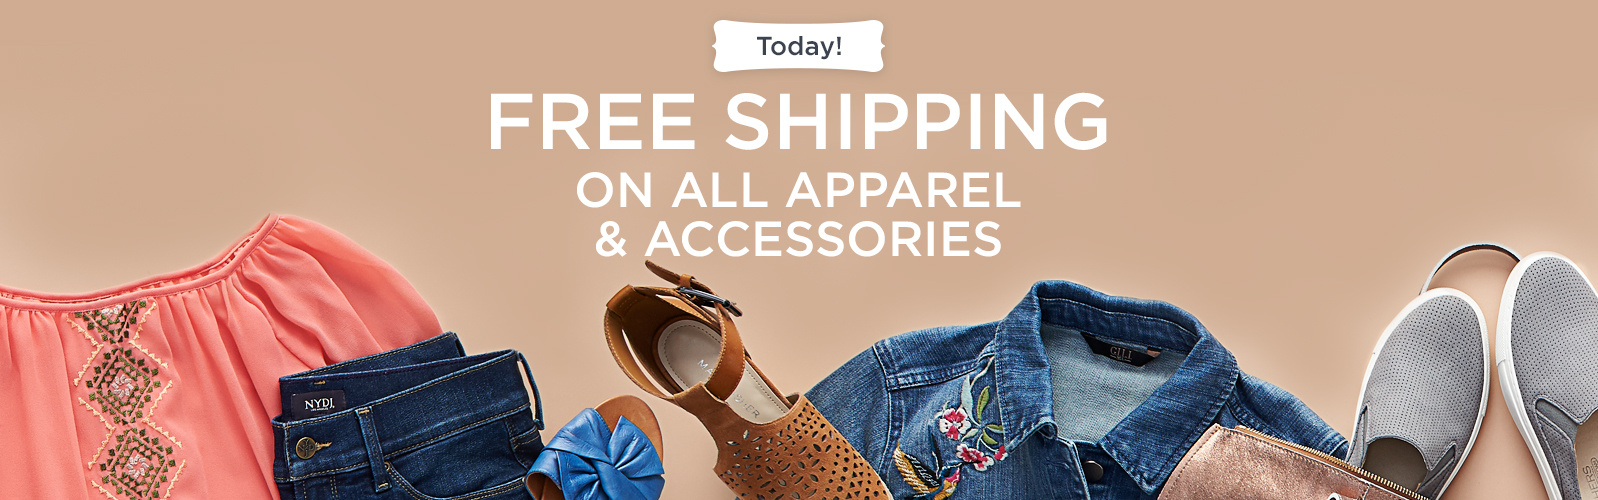 Today! Free Shipping on ALL Apparel & Accessories